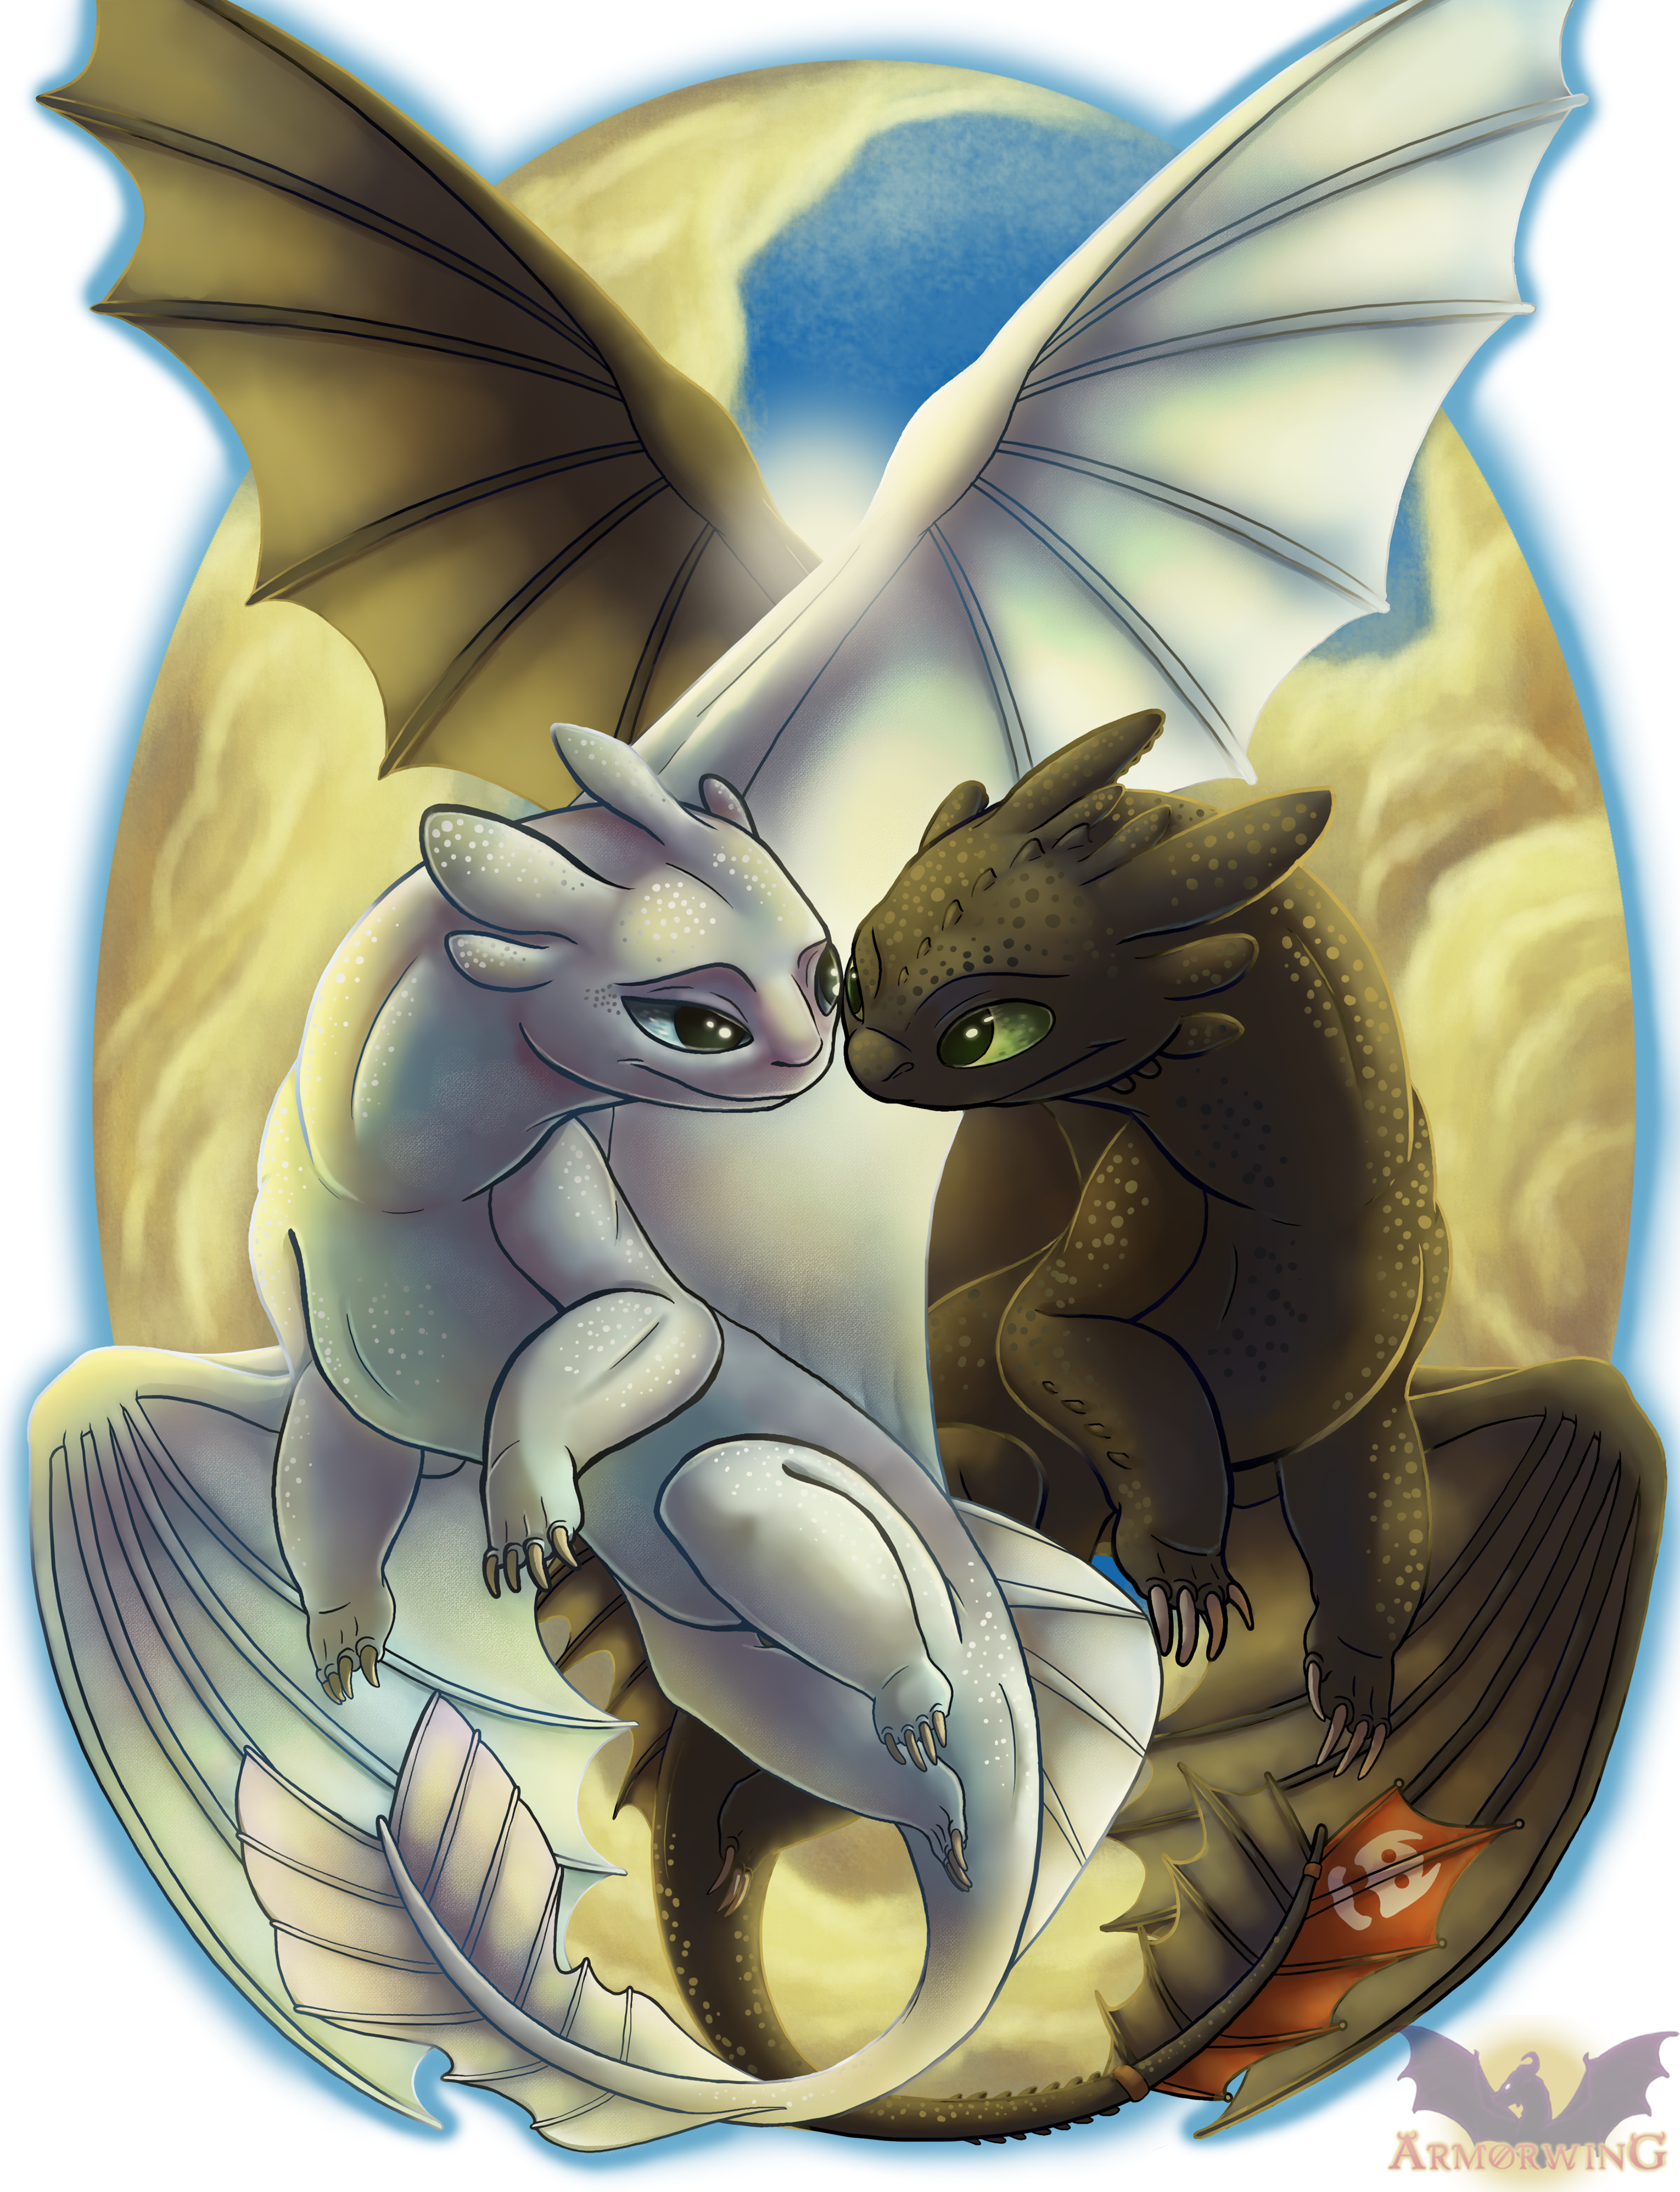 I Belong With You - HTTYD Farewell